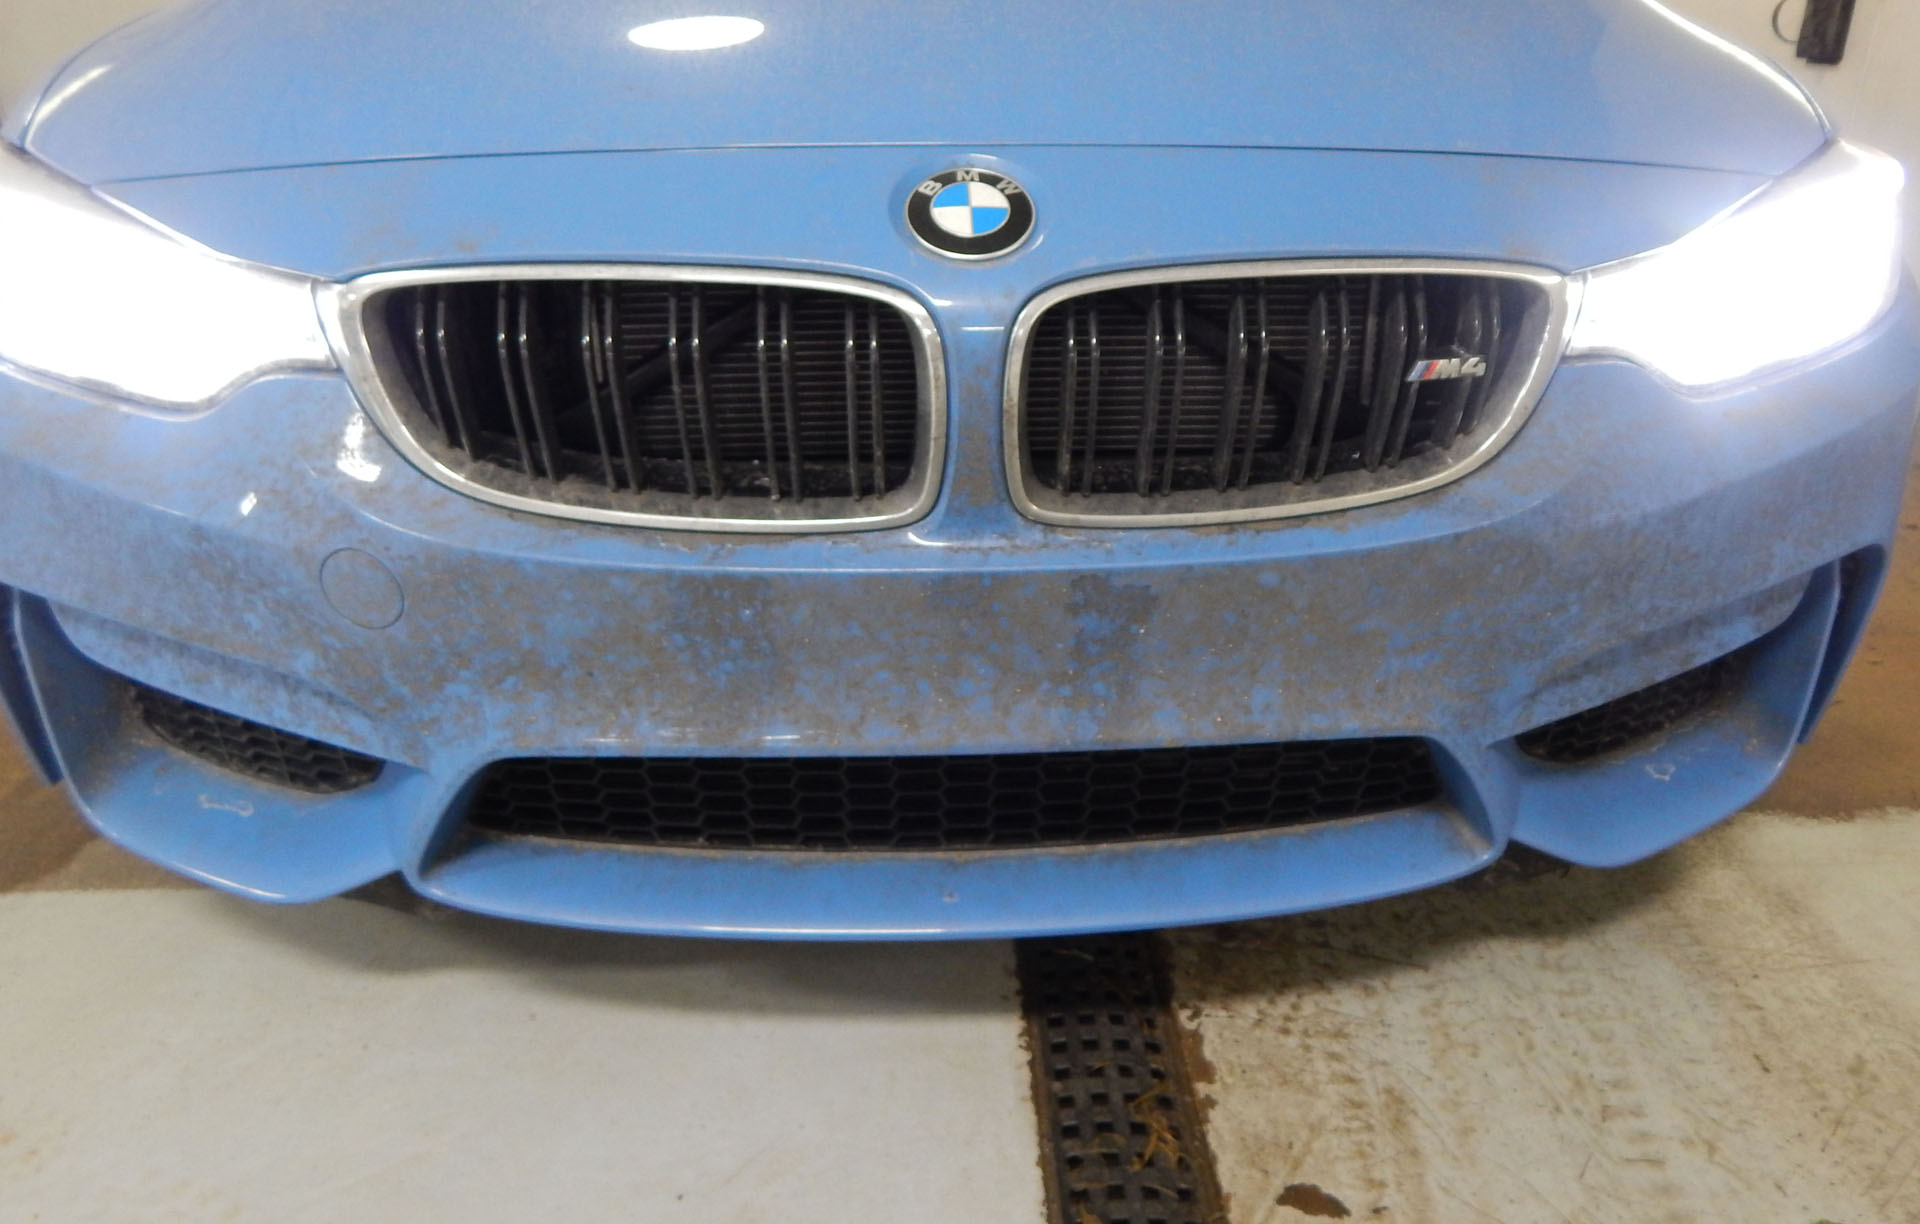 Paint Protection Film (Clear Bra)